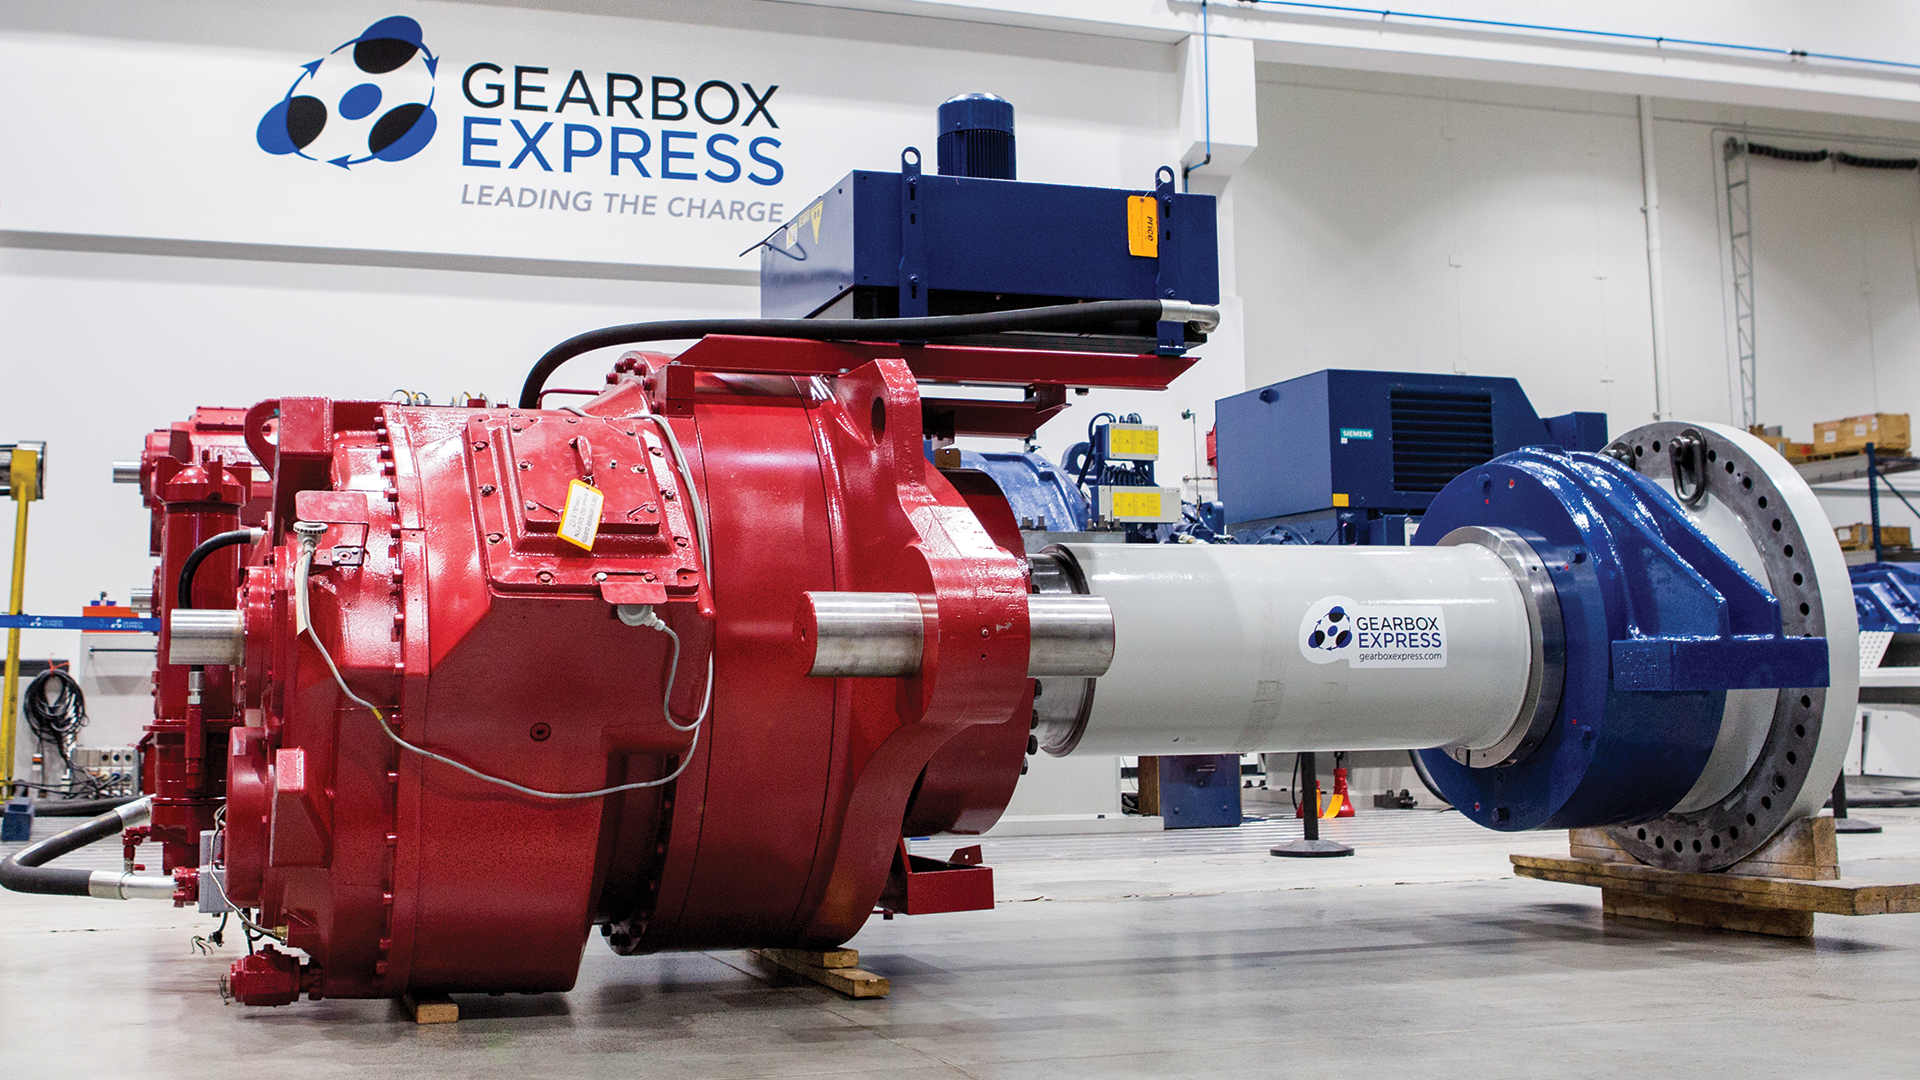 Gearbox Express March 15, 2013